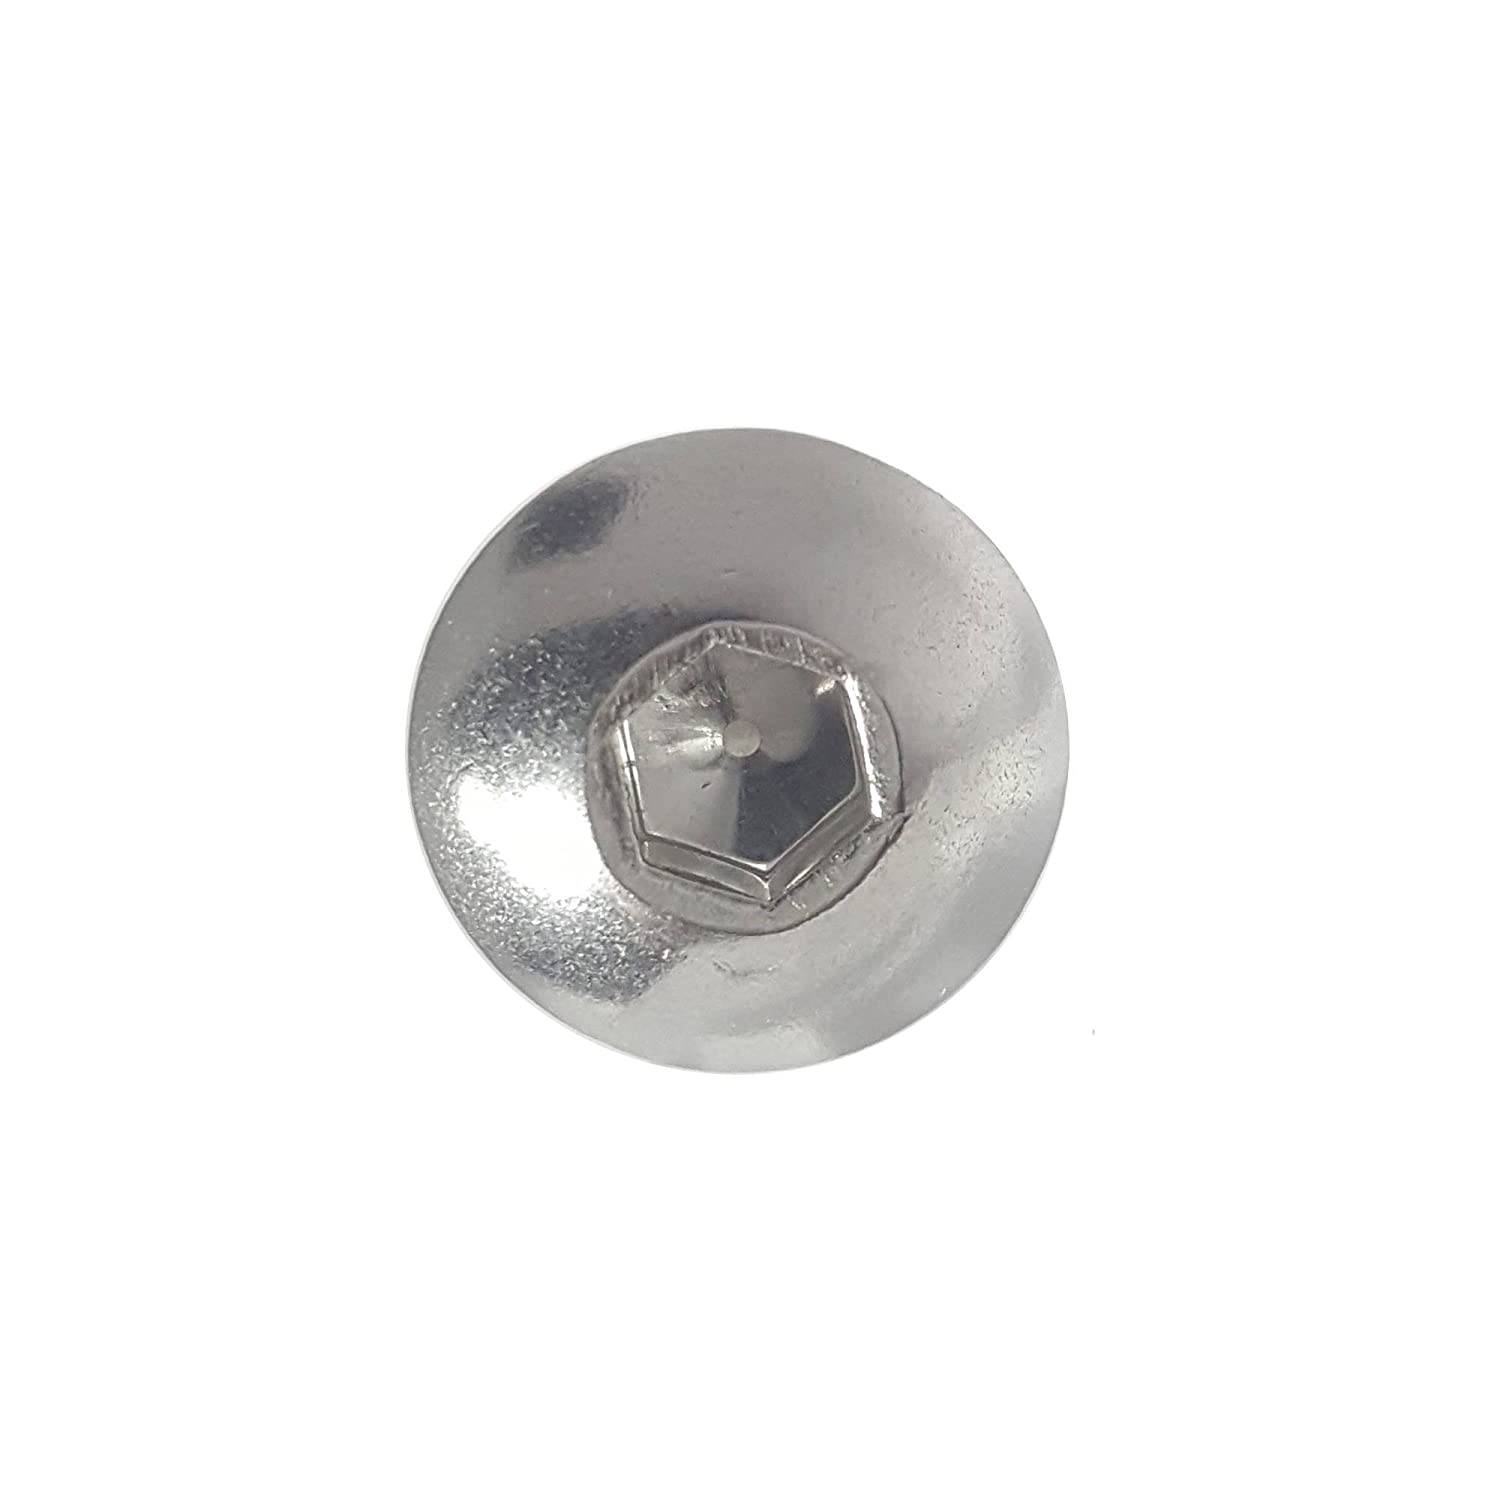 Bright Finish Allen Socket Drive Quantity 25 By Fastenere Lightning Stainless Machine Thread Stainless Steel 18-8 1//4-28 x 1 Button Head Socket Cap Screws Full Thread